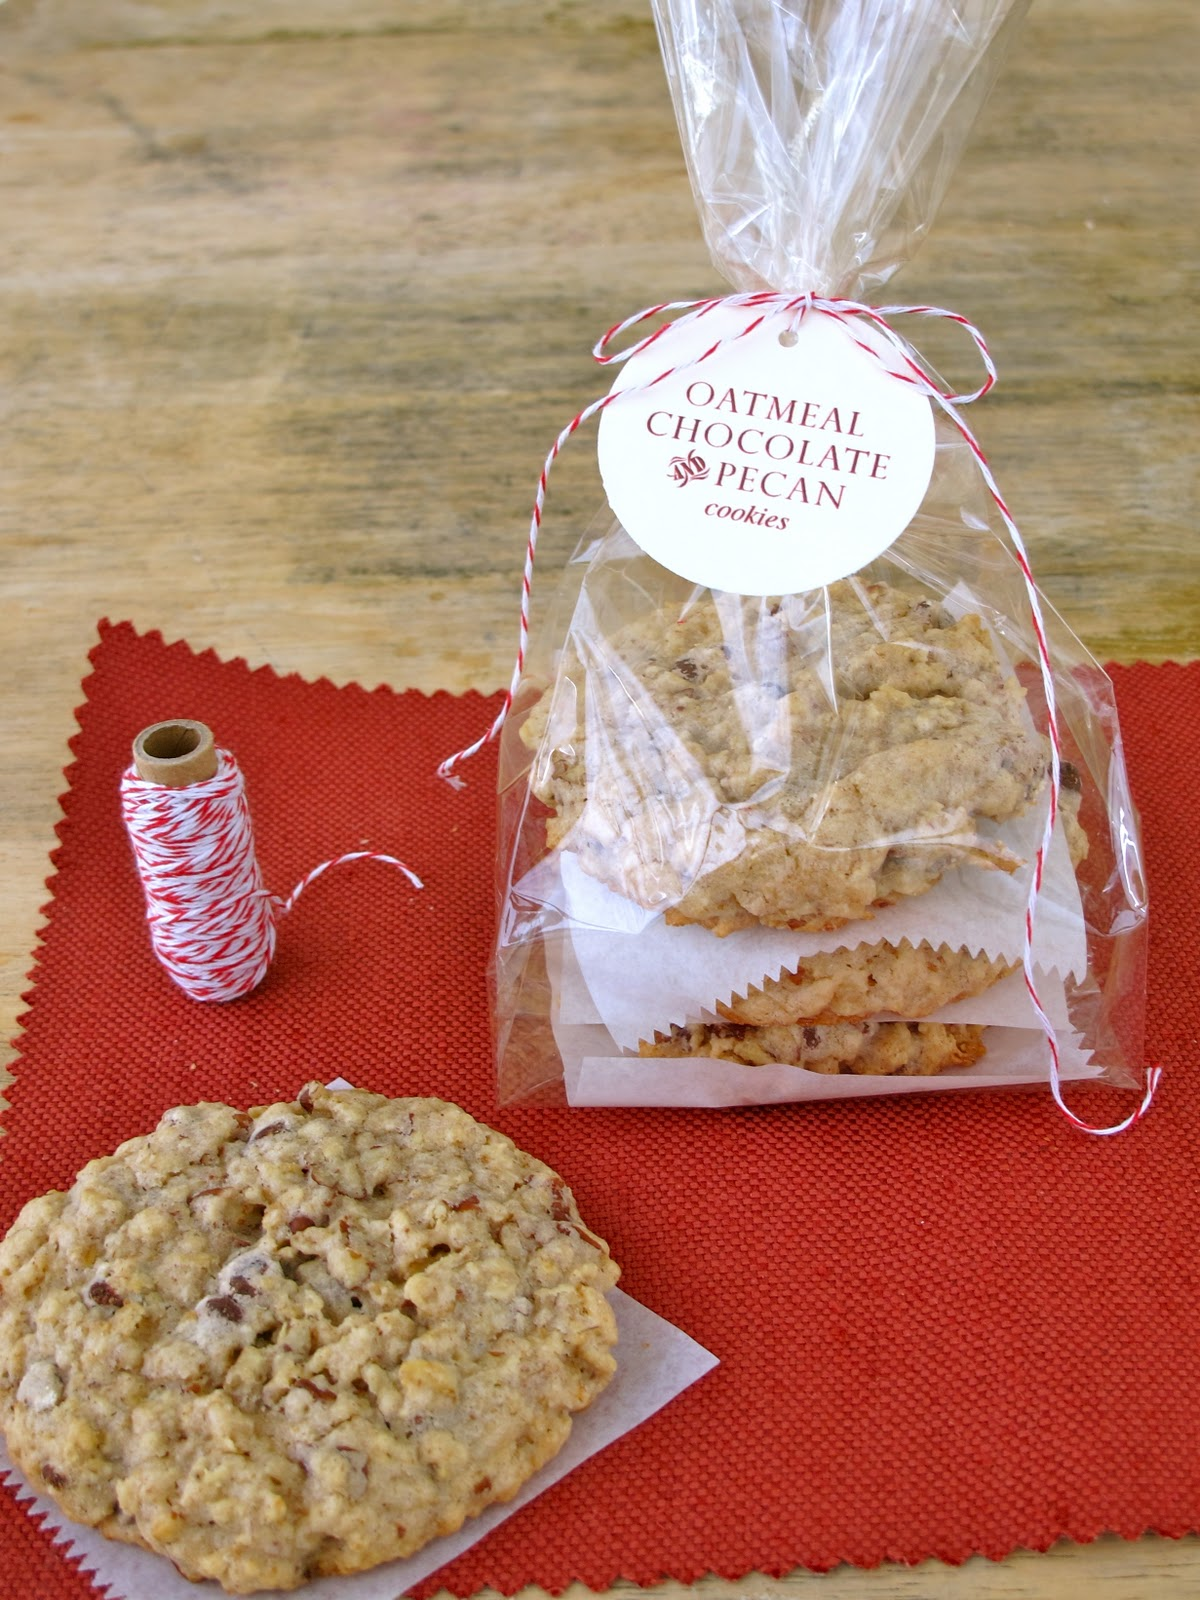 Jenny steffens hobick host a gift wrapping party for Christmas cookies to make for gifts